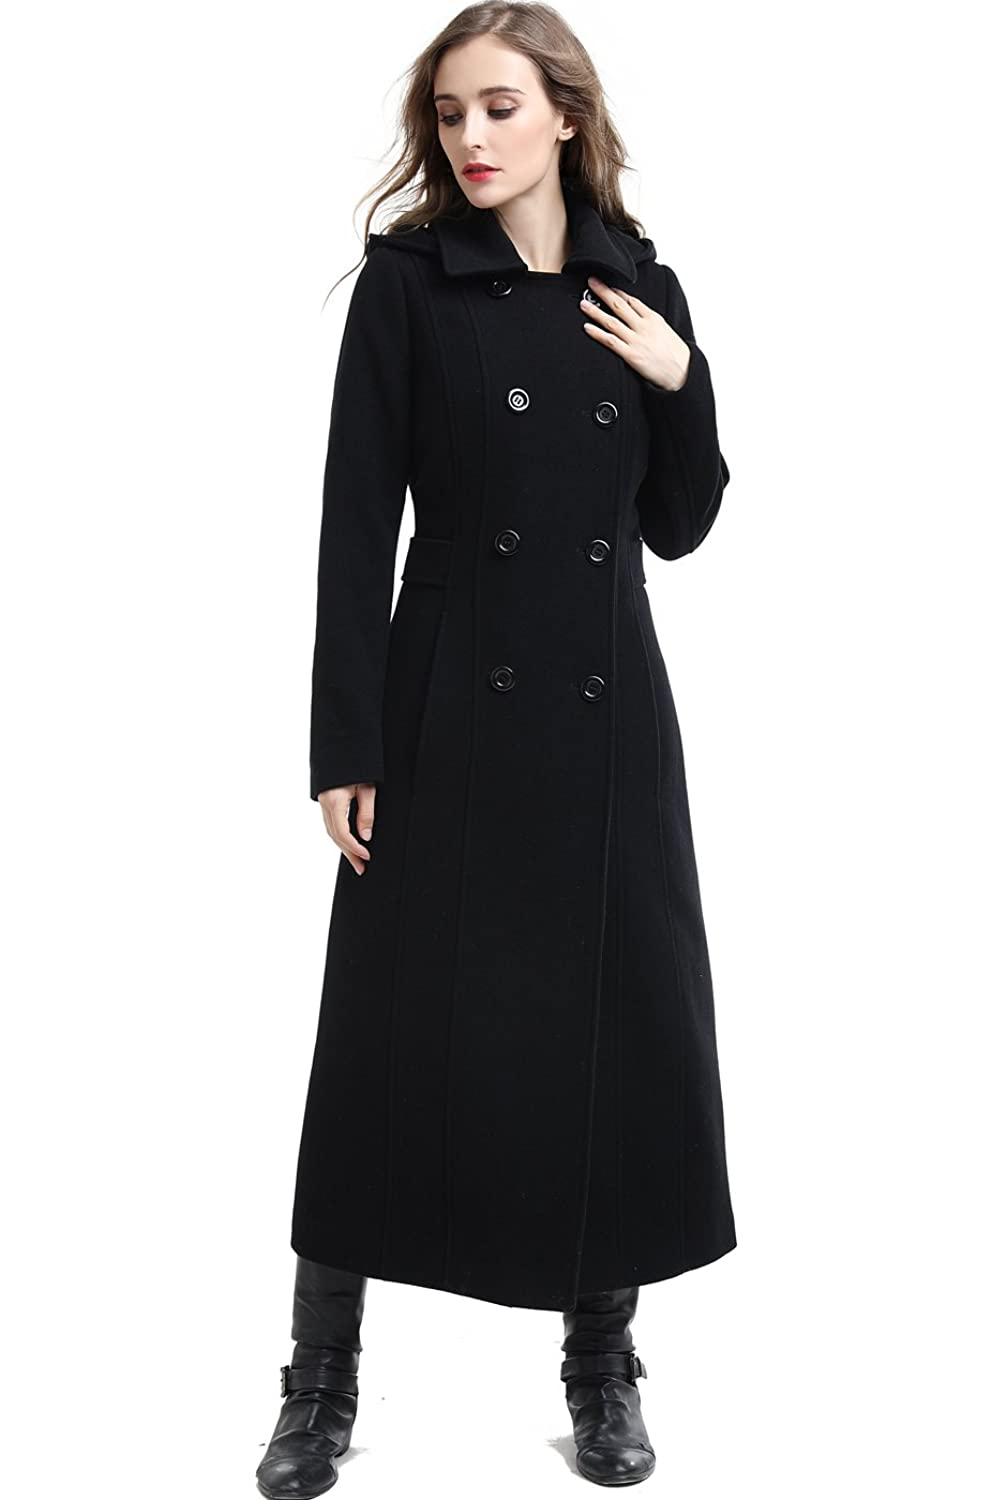 Vintage Coats & Jackets | Retro Coats and Jackets BGSD Womens Mariel Wool Blend Hooded Long Coat $169.00 AT vintagedancer.com